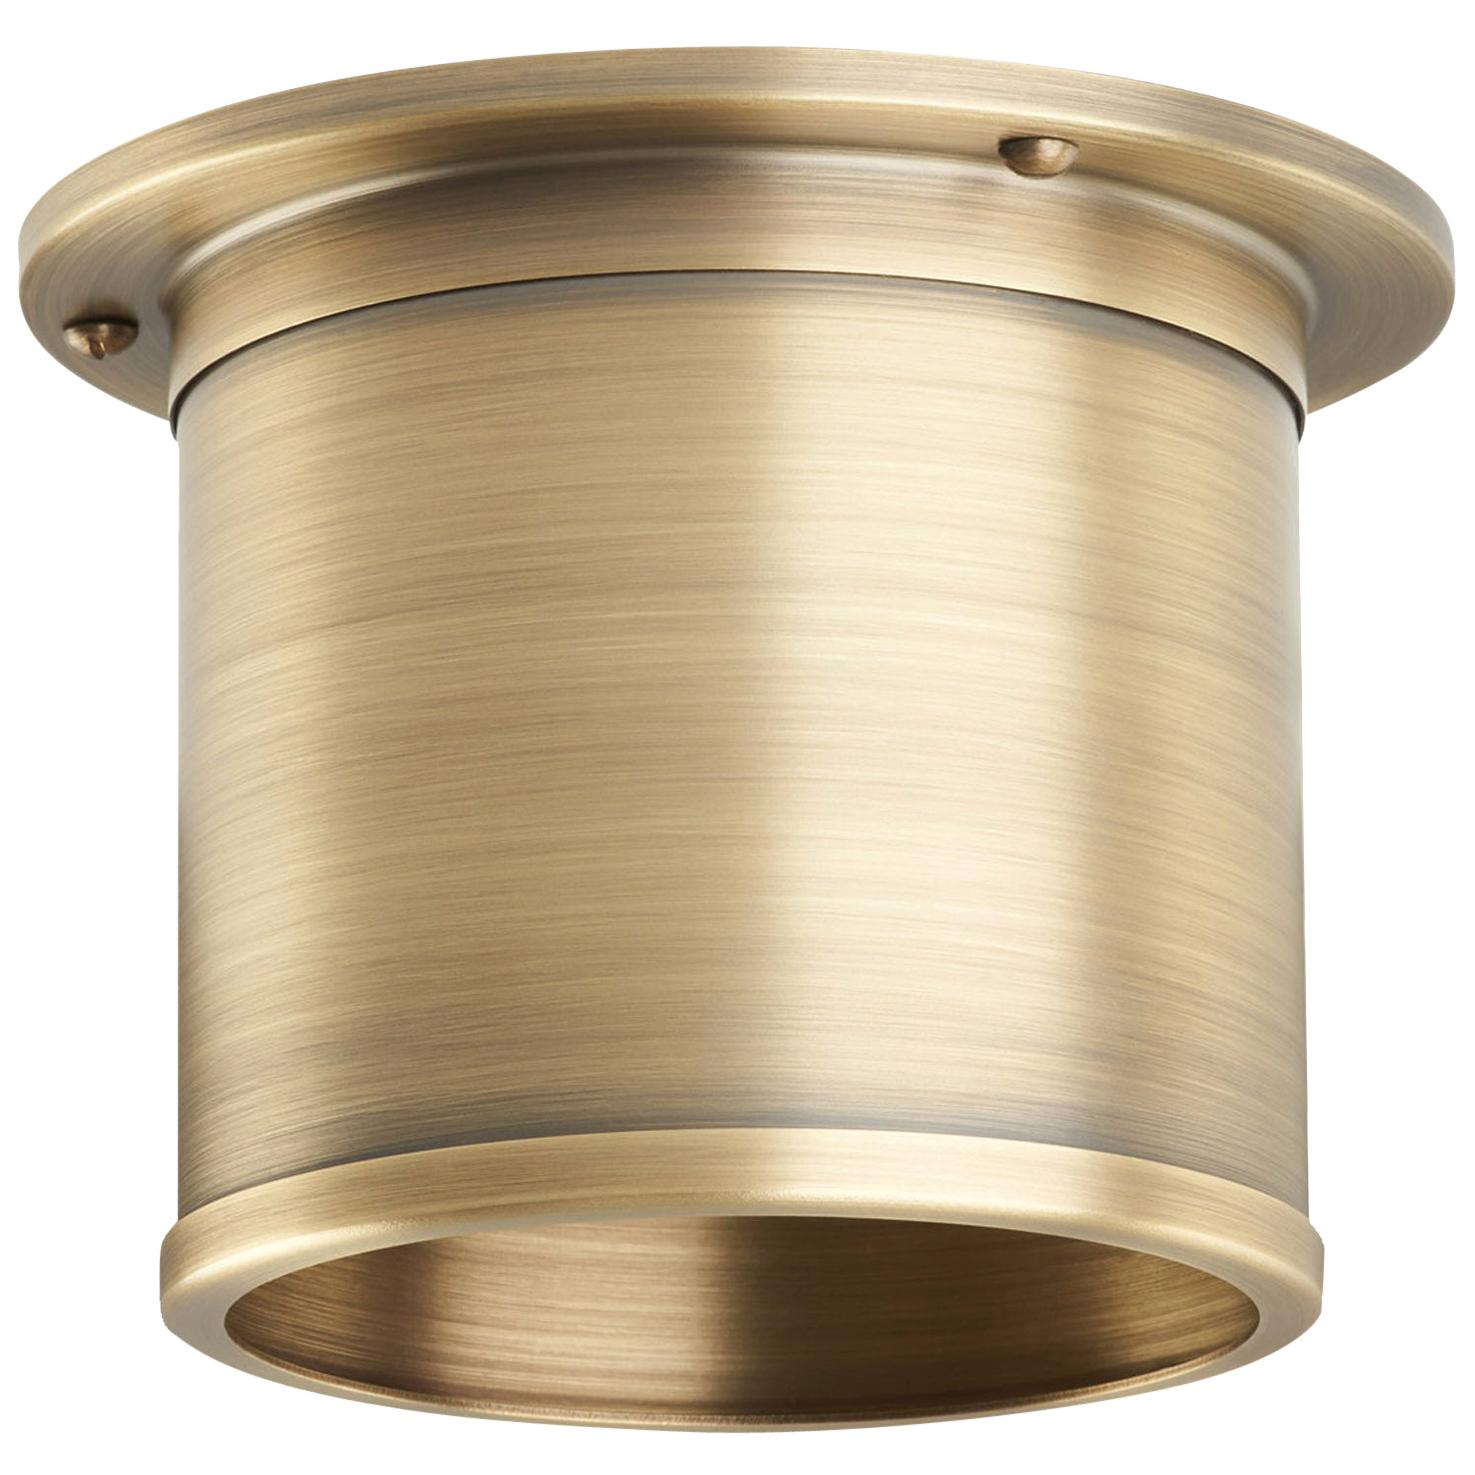 And Objects Compton Spot Diffuser, Aged Brass Recessed Spot Light Shade